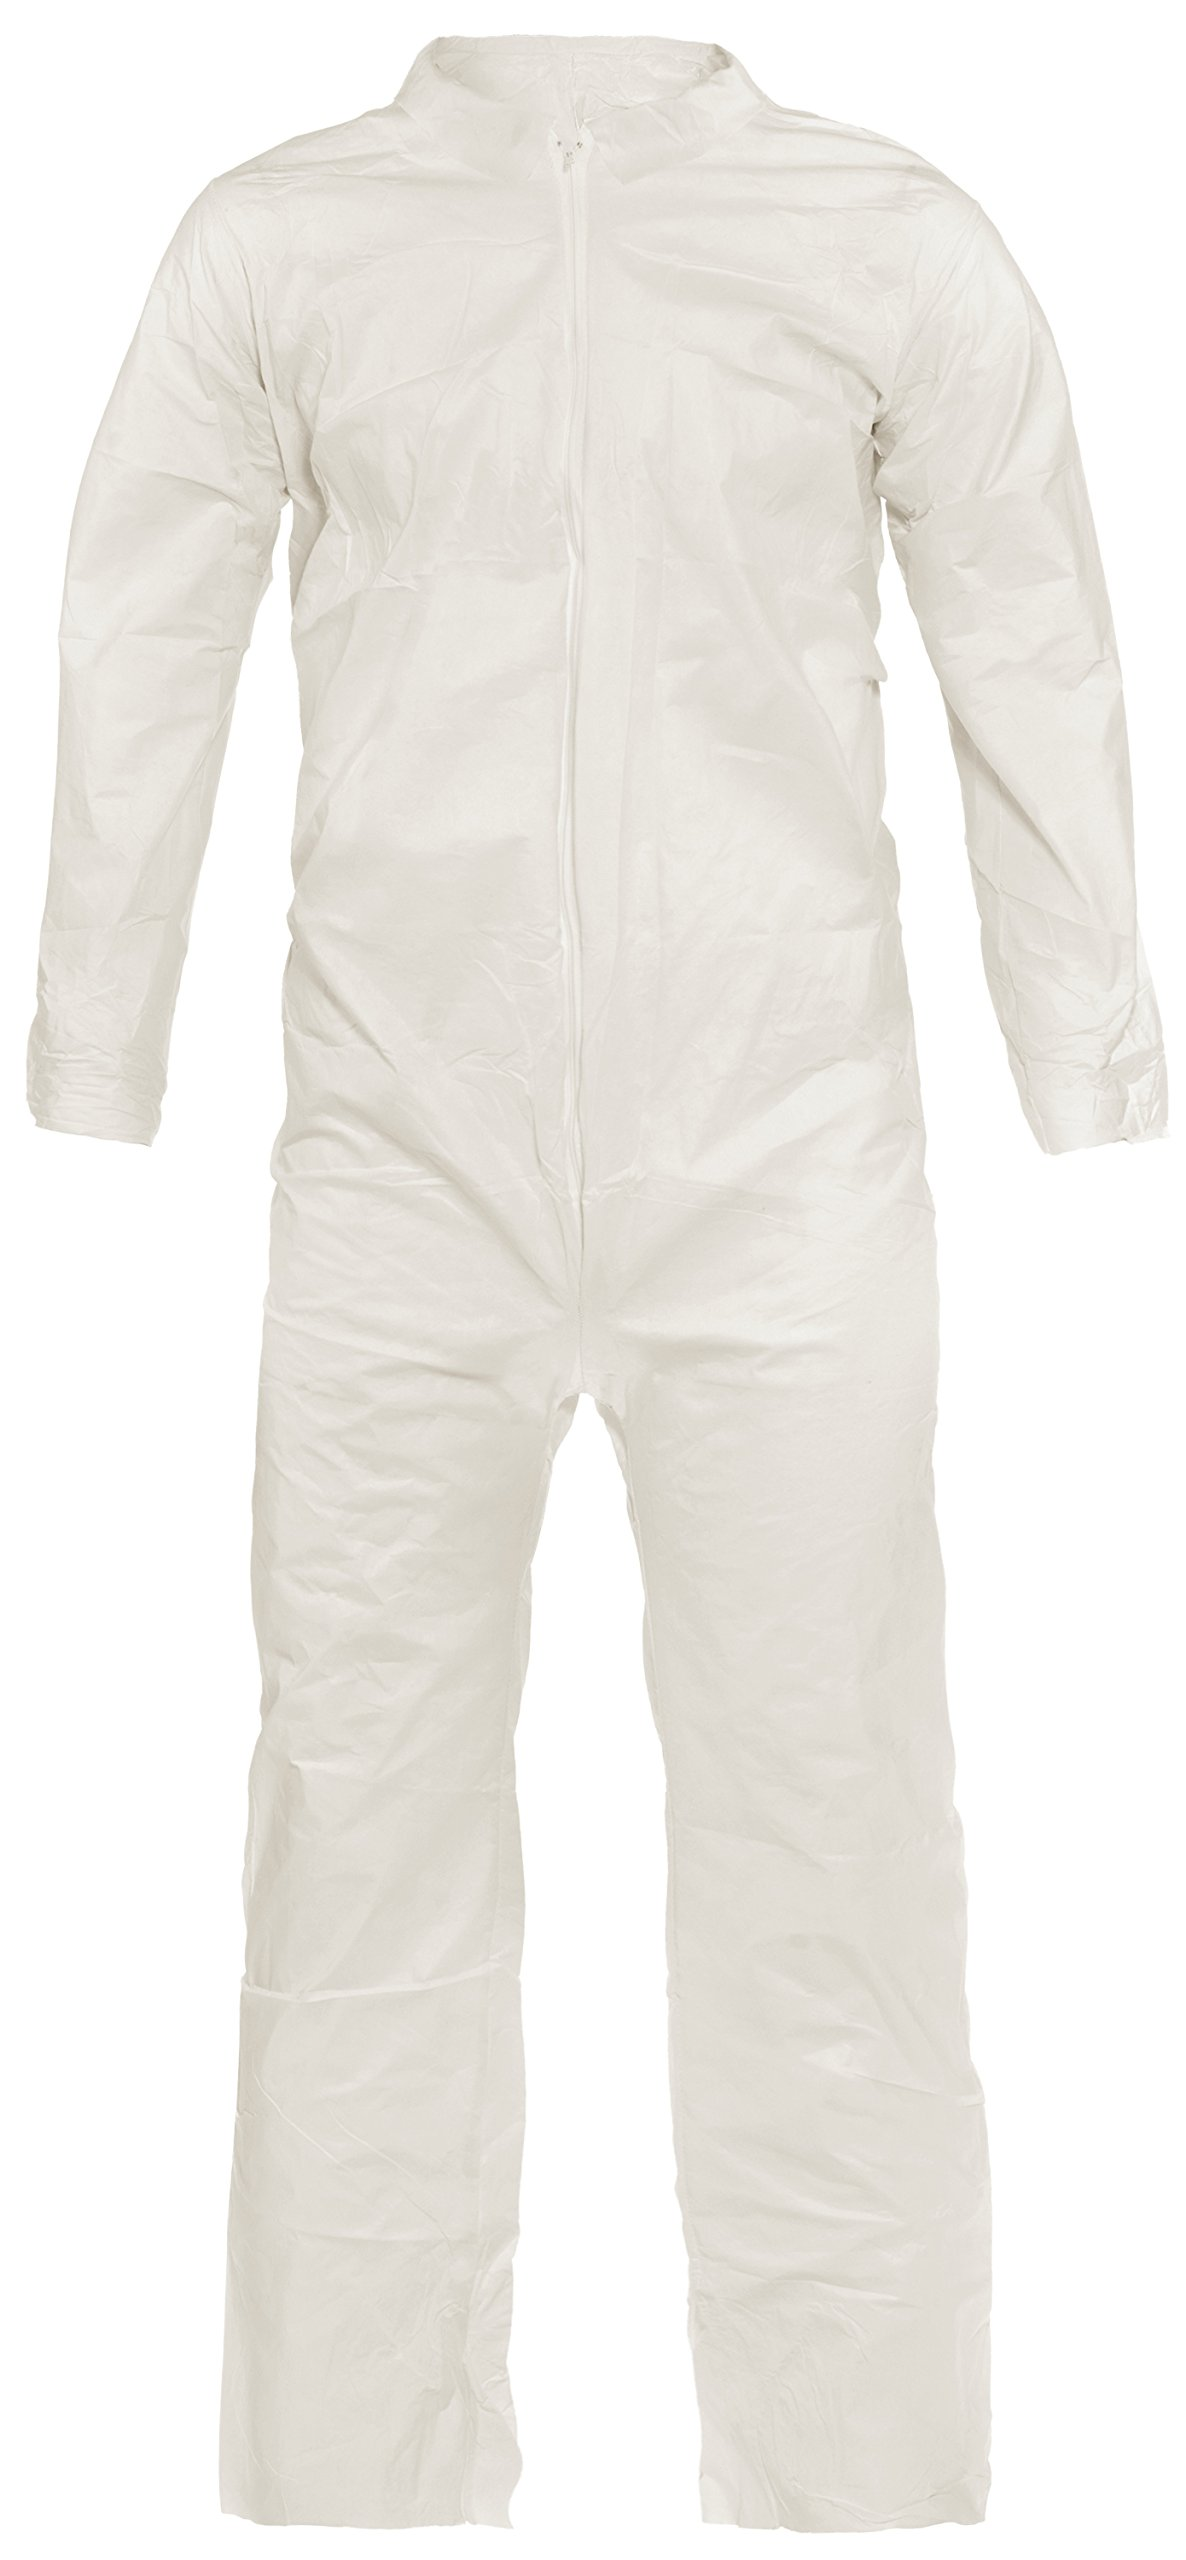 Lakeland Pyrolon Plus 2 Flame-Resistant Coverall, Disposable, Open Cuff, Large, White (Case of 25)